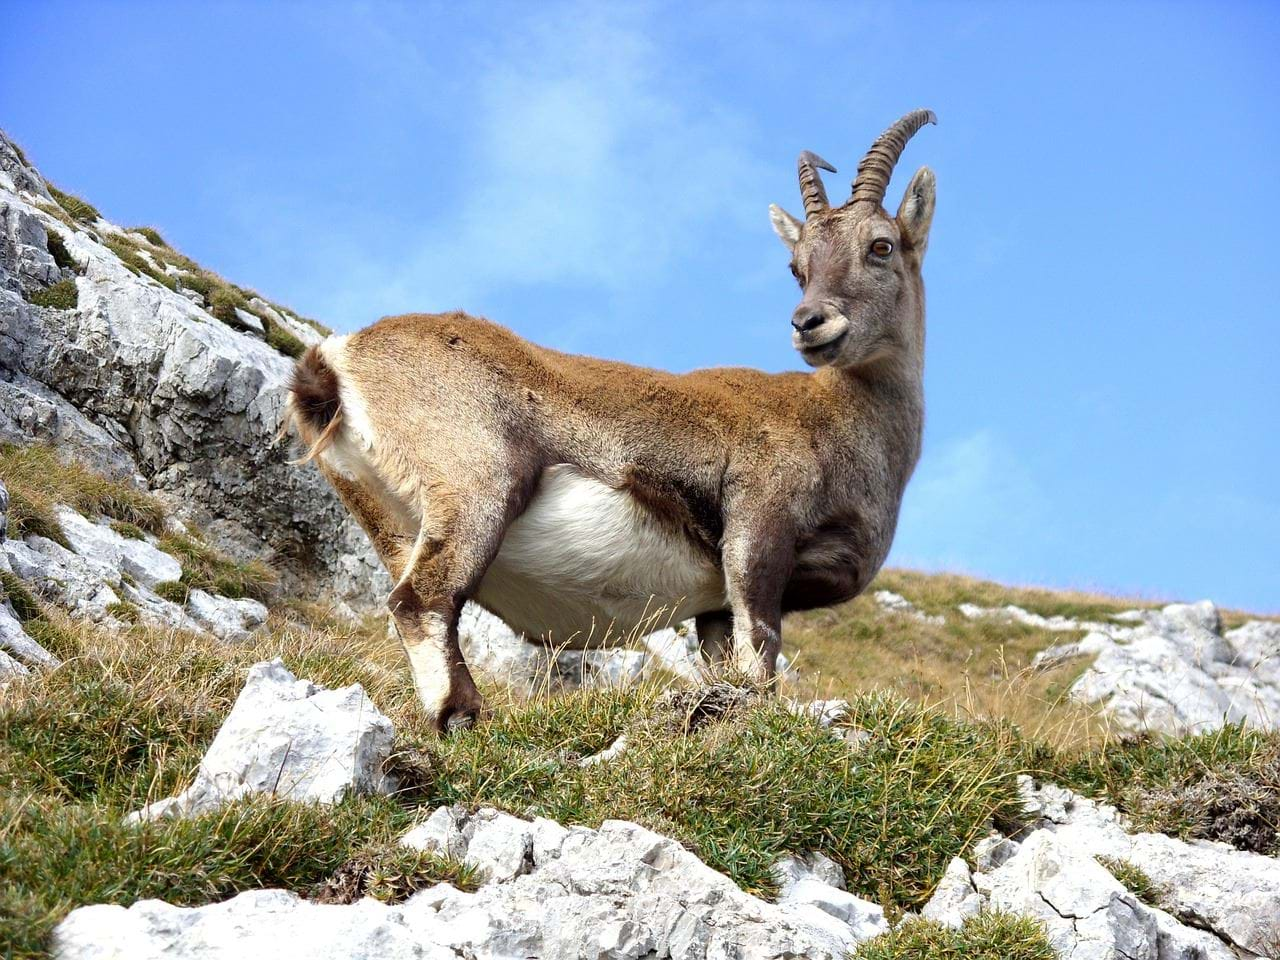 Wildlife in the Alps